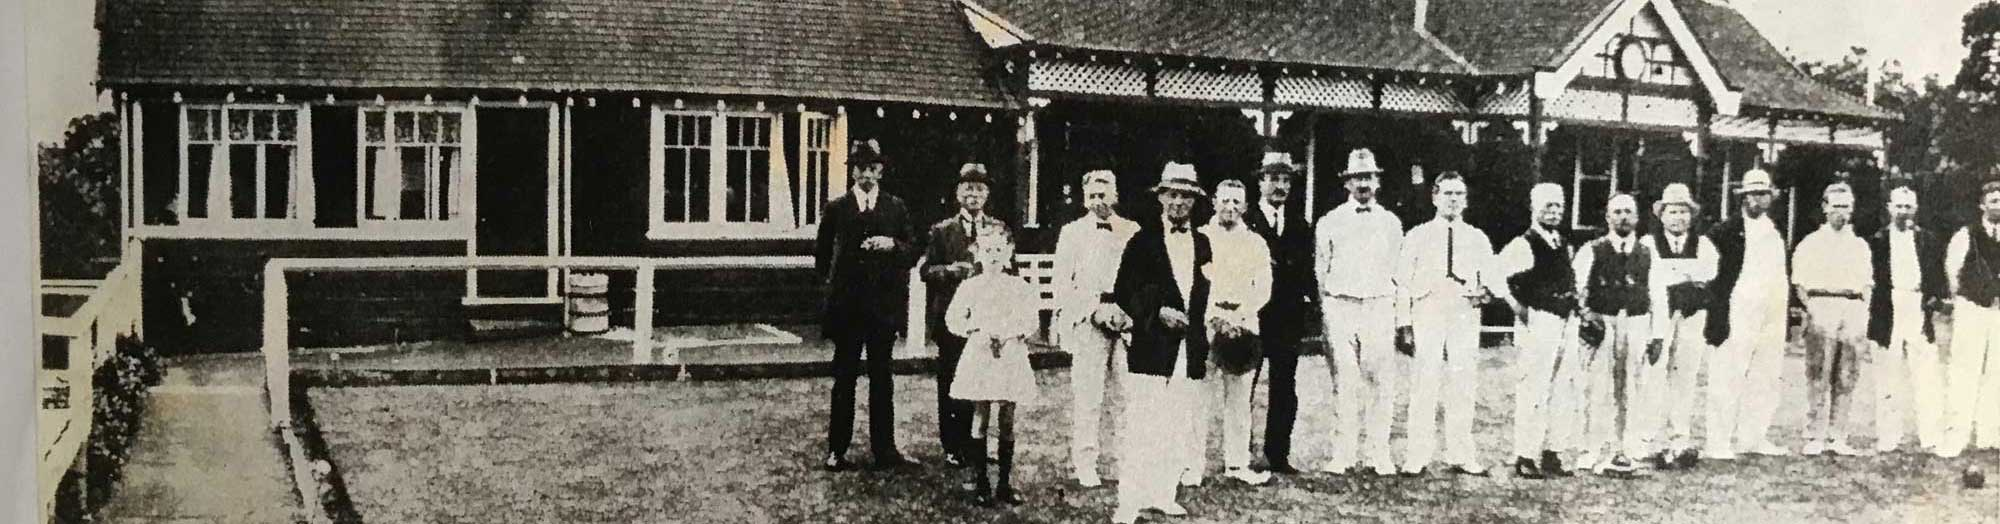 Proud Members of the Mosman Bowling Club